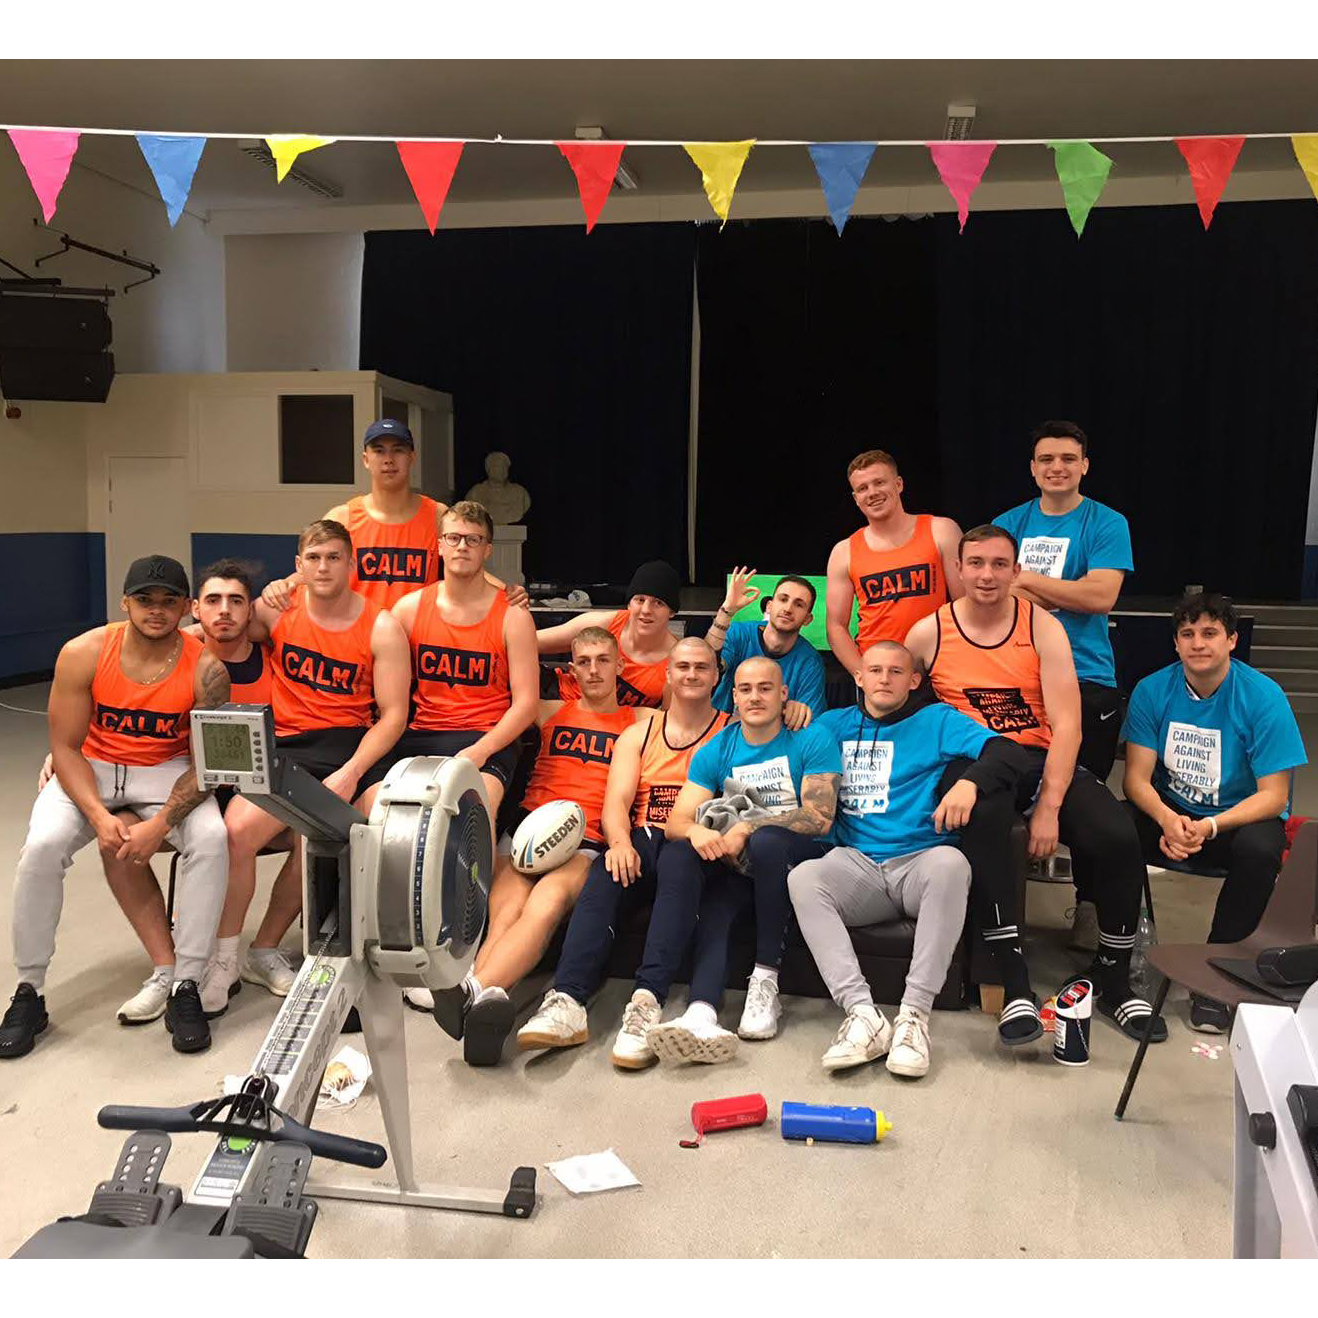 Picture of the Rugby League team after a charity rowing session